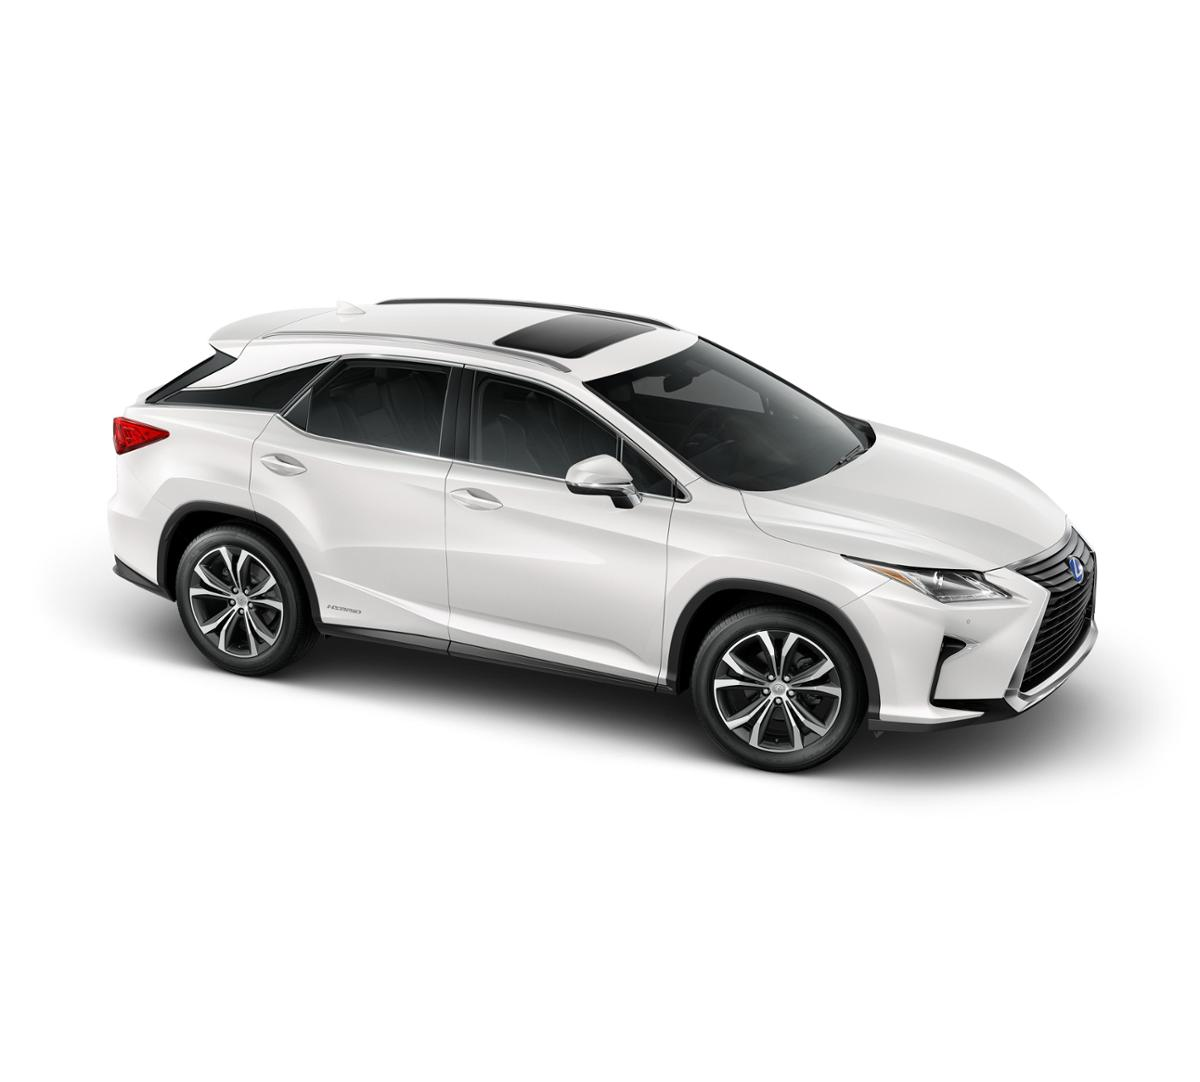 Lexus Rx 450h: East Haven Lexus RX 450h 2019 Eminent White Pearl: New Suv